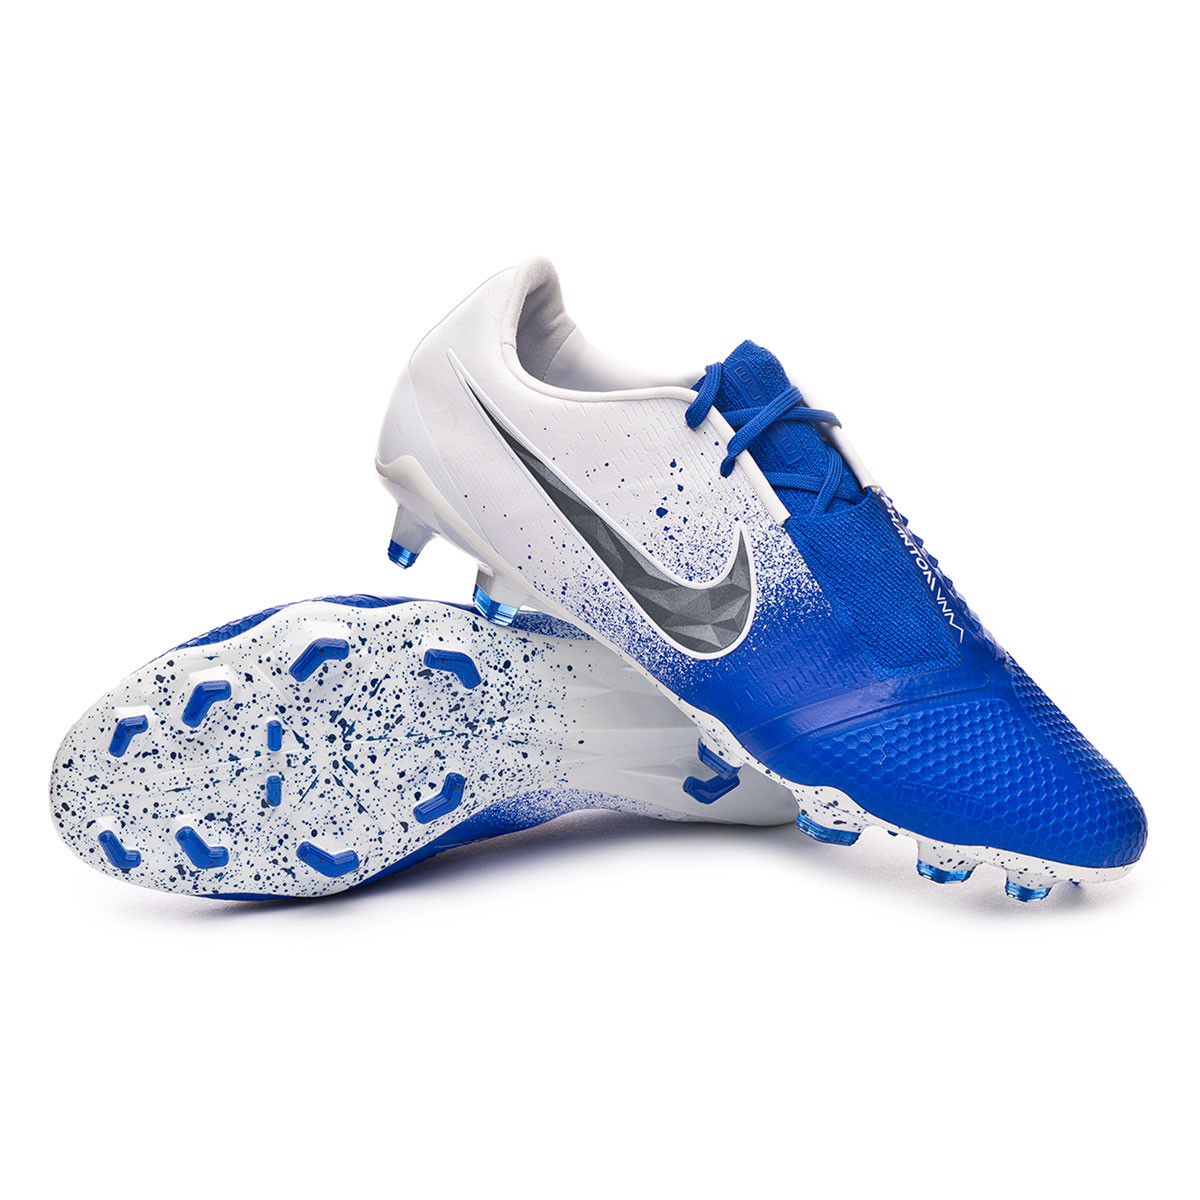 3ffe55bb99 Football Boots Nike Phantom Venom Elite FG White-Black-Racer blue ...